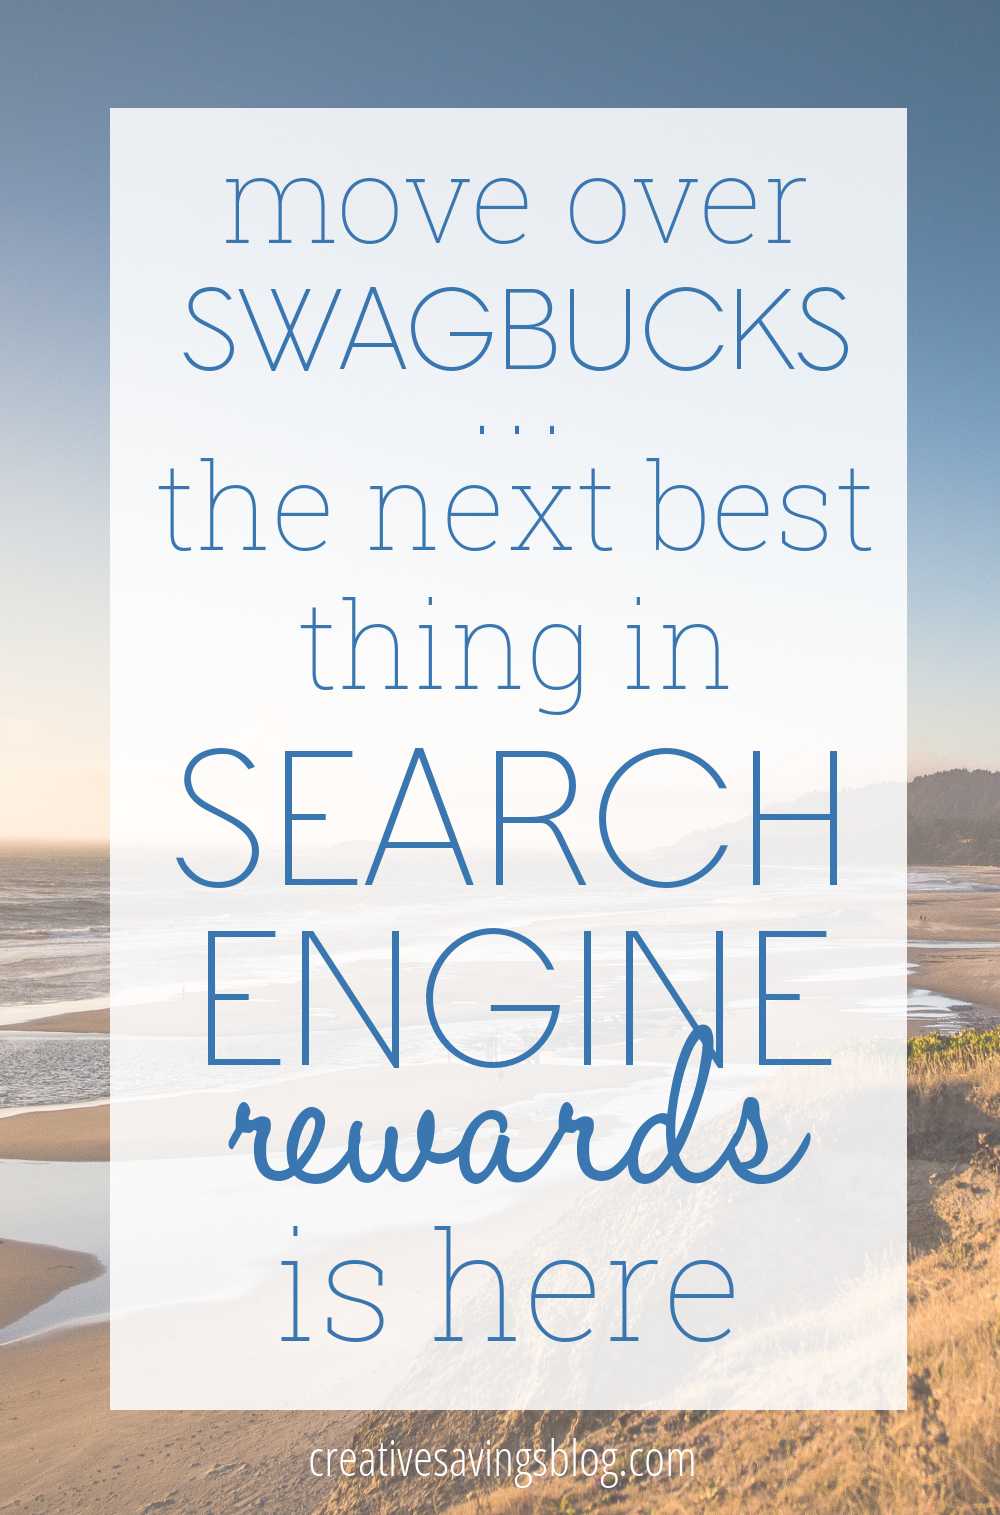 If you've ever been frustrated with the search capabilities of Swagbucks, but still want to earn Amazon gift cards each month, there's a new program that you MUST try! Bing search engine rewards combines the best of both worlds, and gives you the biggest bang for your reward buck!